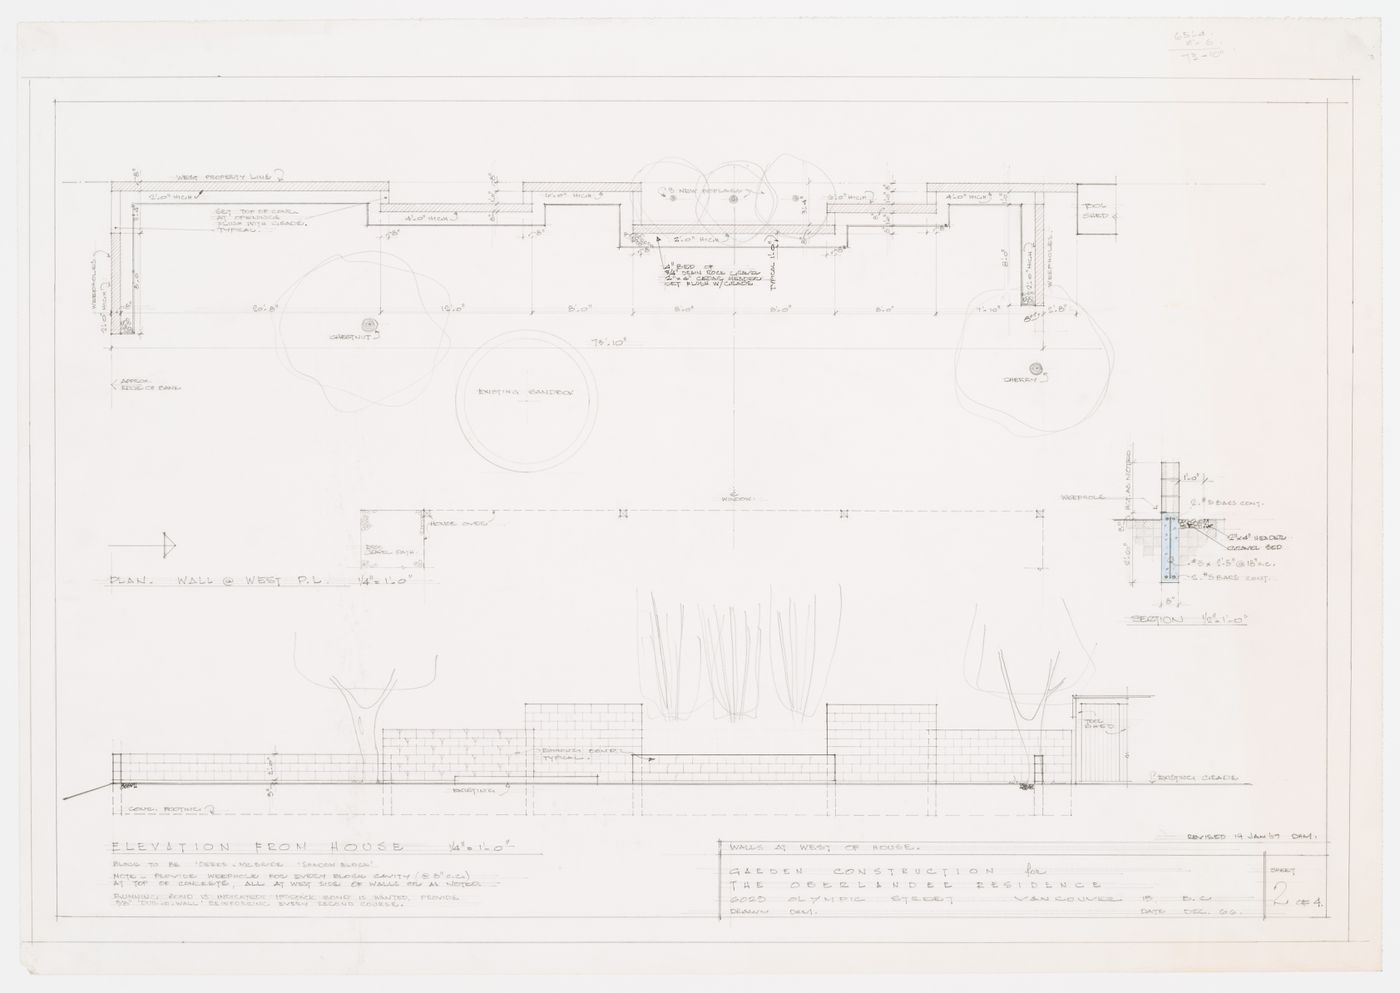 Garden construction for the Oberlander Residence: plan and elevation of the walls at the west of the house